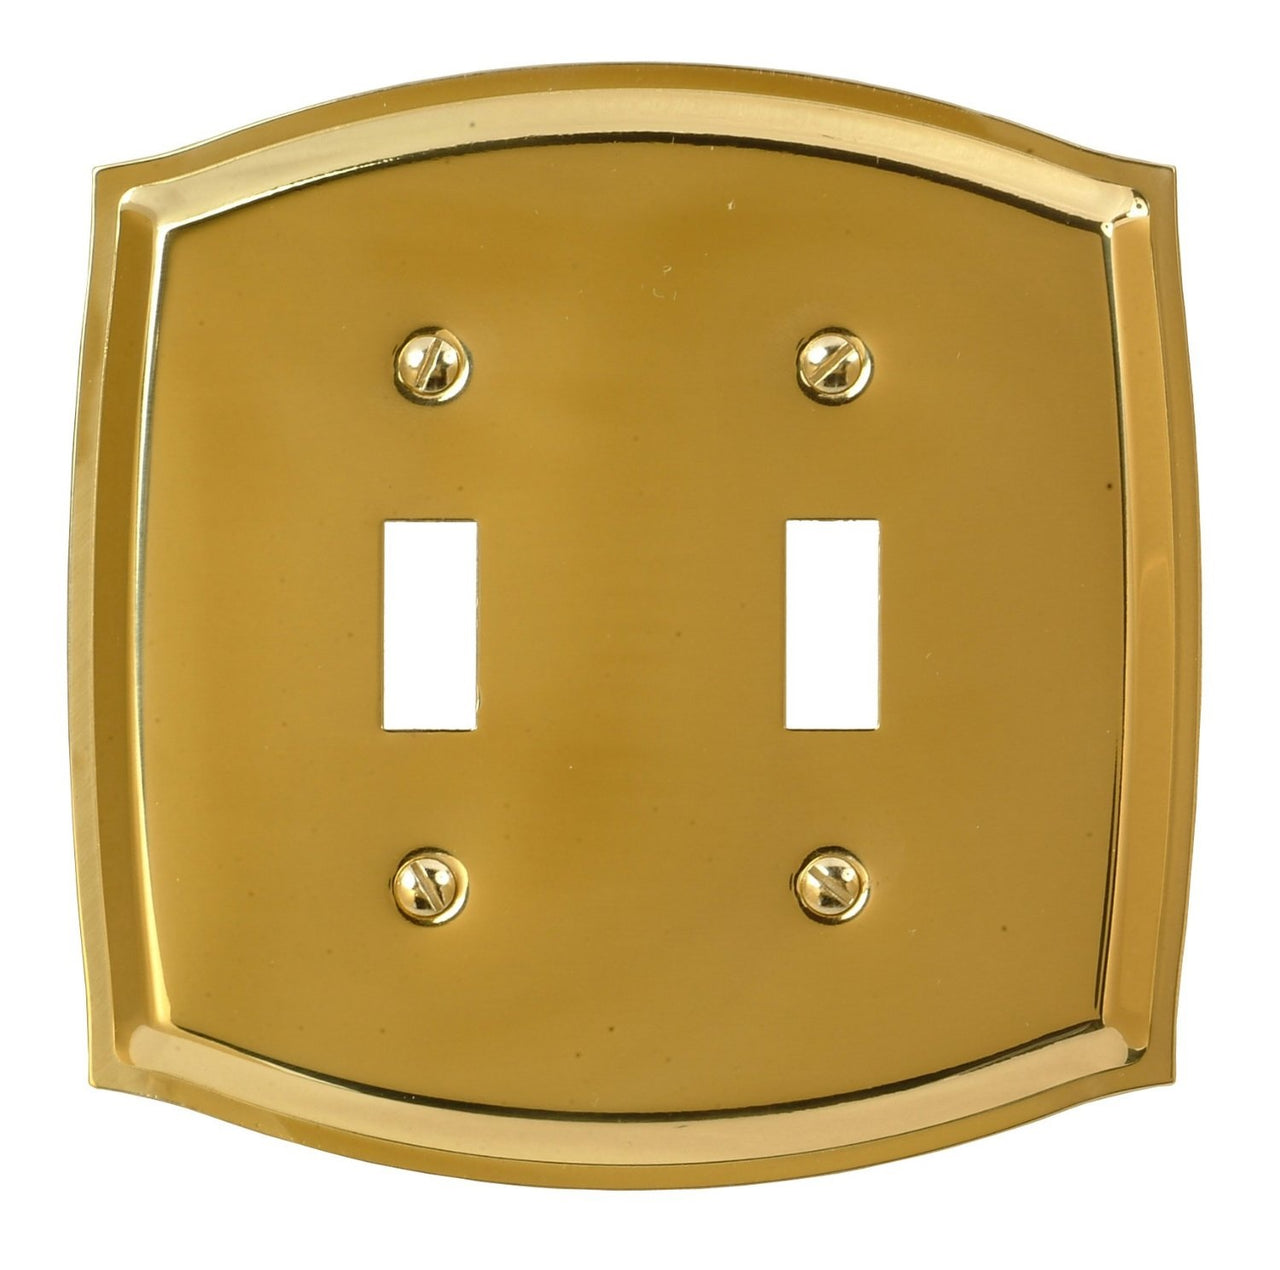 Amertac 76TTBR Sonoma 2 Toggle Wallplate, Polished Brass